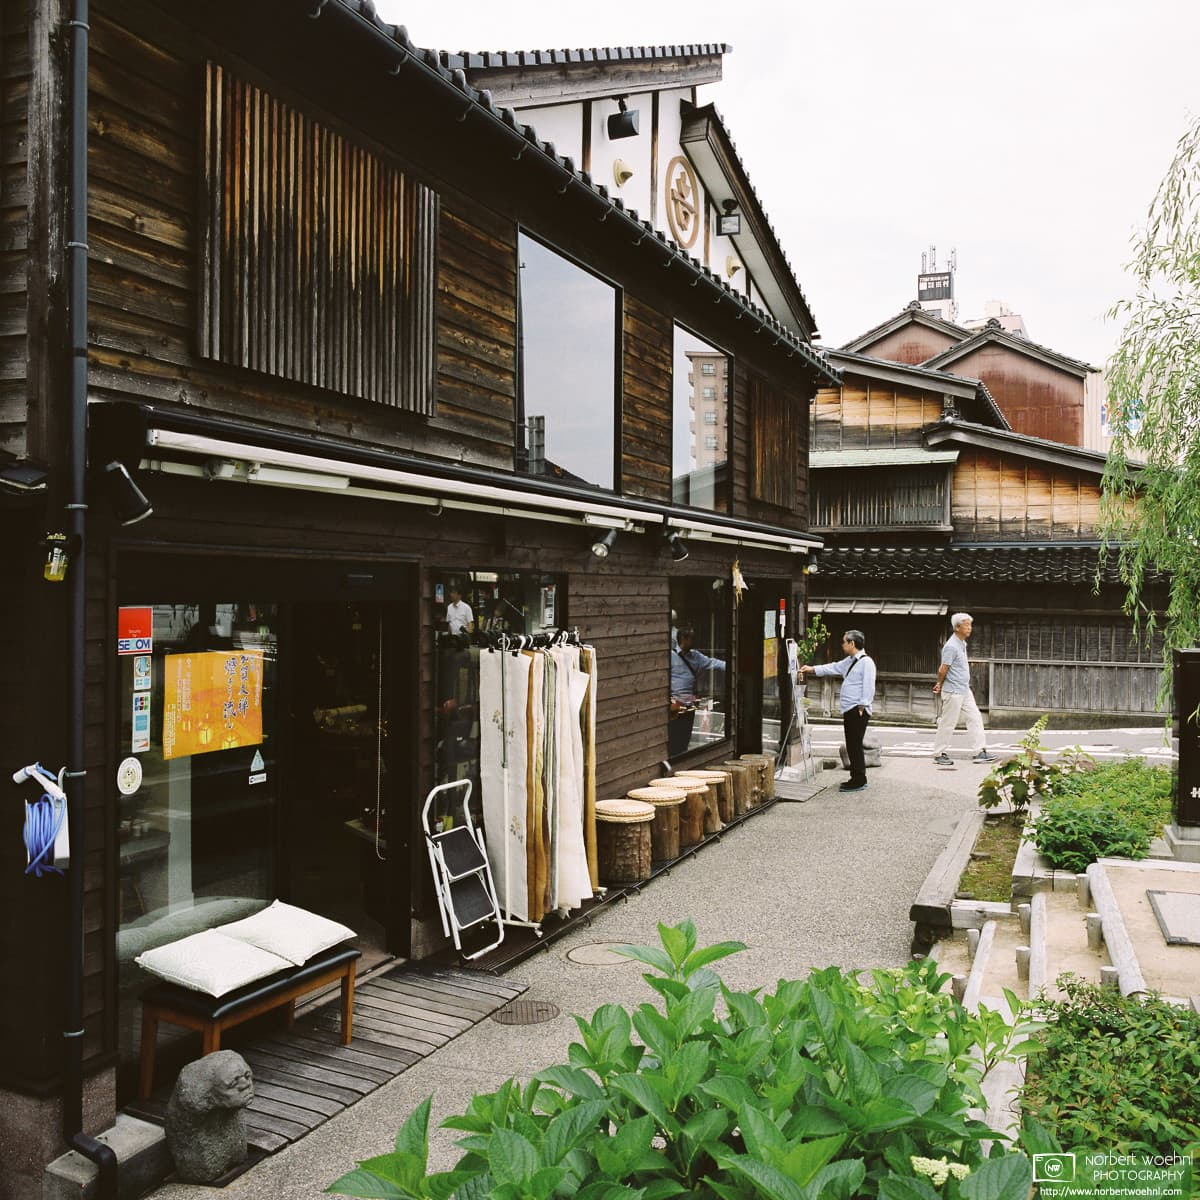 A daily life impression from this corner of historic buildings at Kanazawa in Ishikawa Prefecture, Japan.